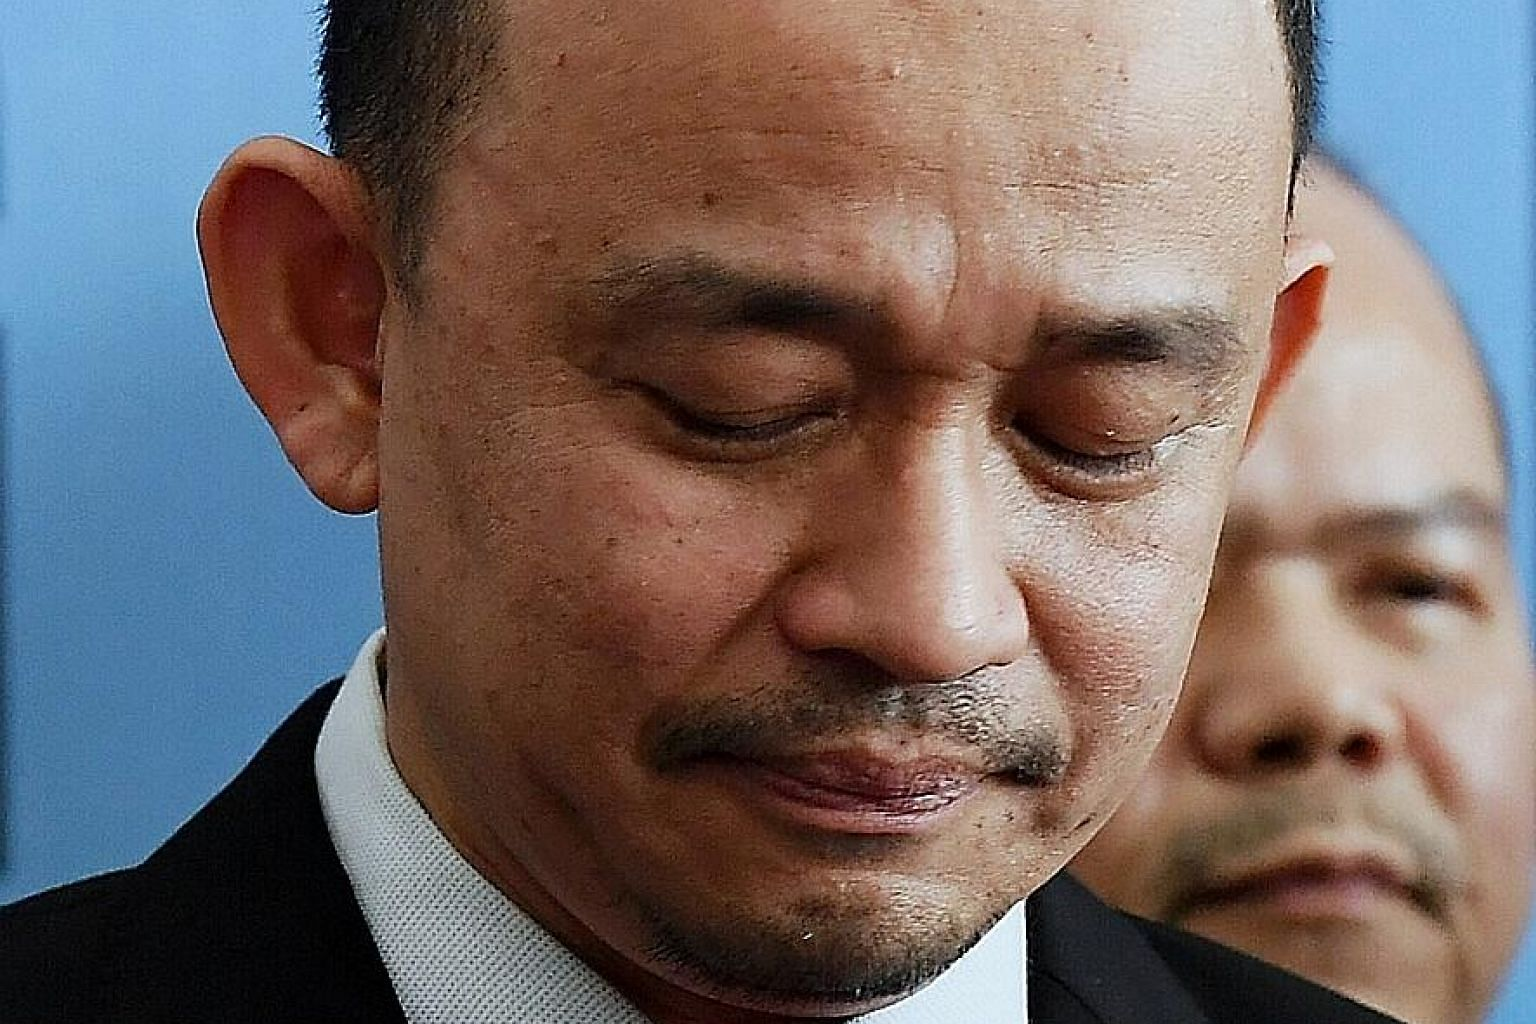 Dr Maszlee Malik says he was seen as causing crises for the leadership over issues such as free school breakfasts.